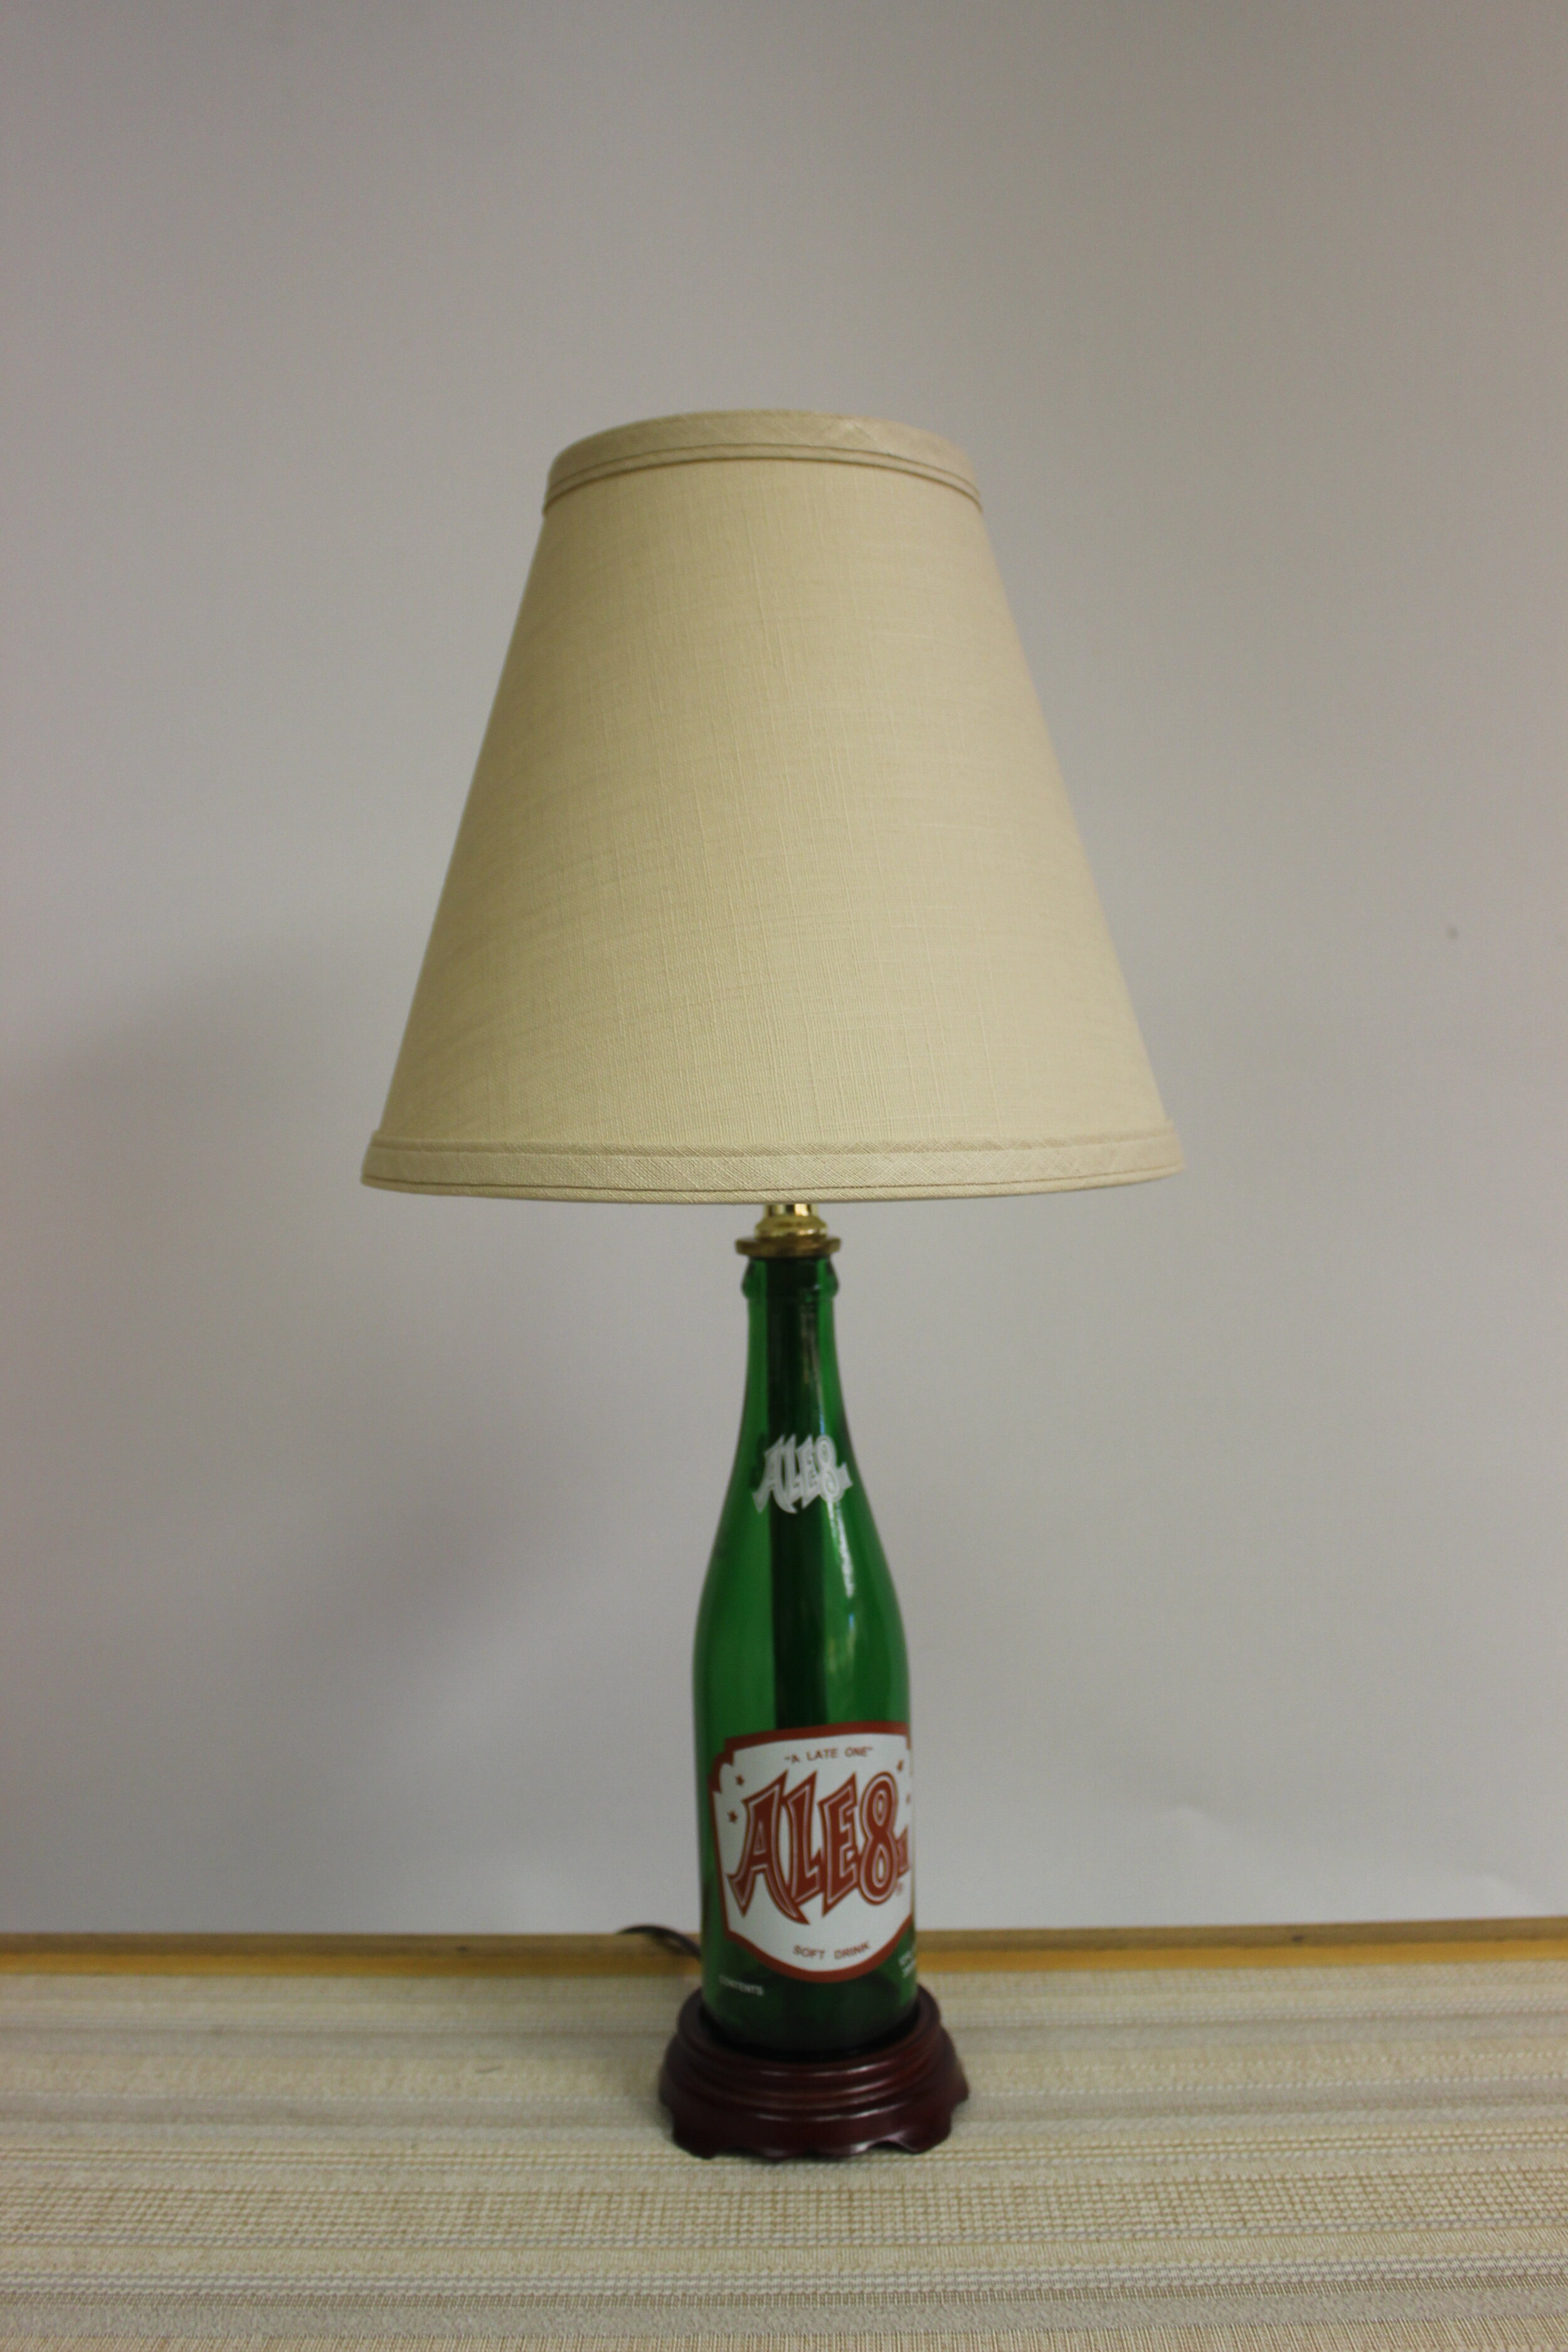 """Ale-8-1 Soda Bottle Lamp    Ale-8 is a regional soft drink bottled in Central Kentucky    The lamp is wired with high quality electrical components, including a Leviton lamp socket. Brown lamp wire extending approximately 7 feet from the wood base to the plug.     This lamp stands 19"""" high.    $125.00, plus shipping"""